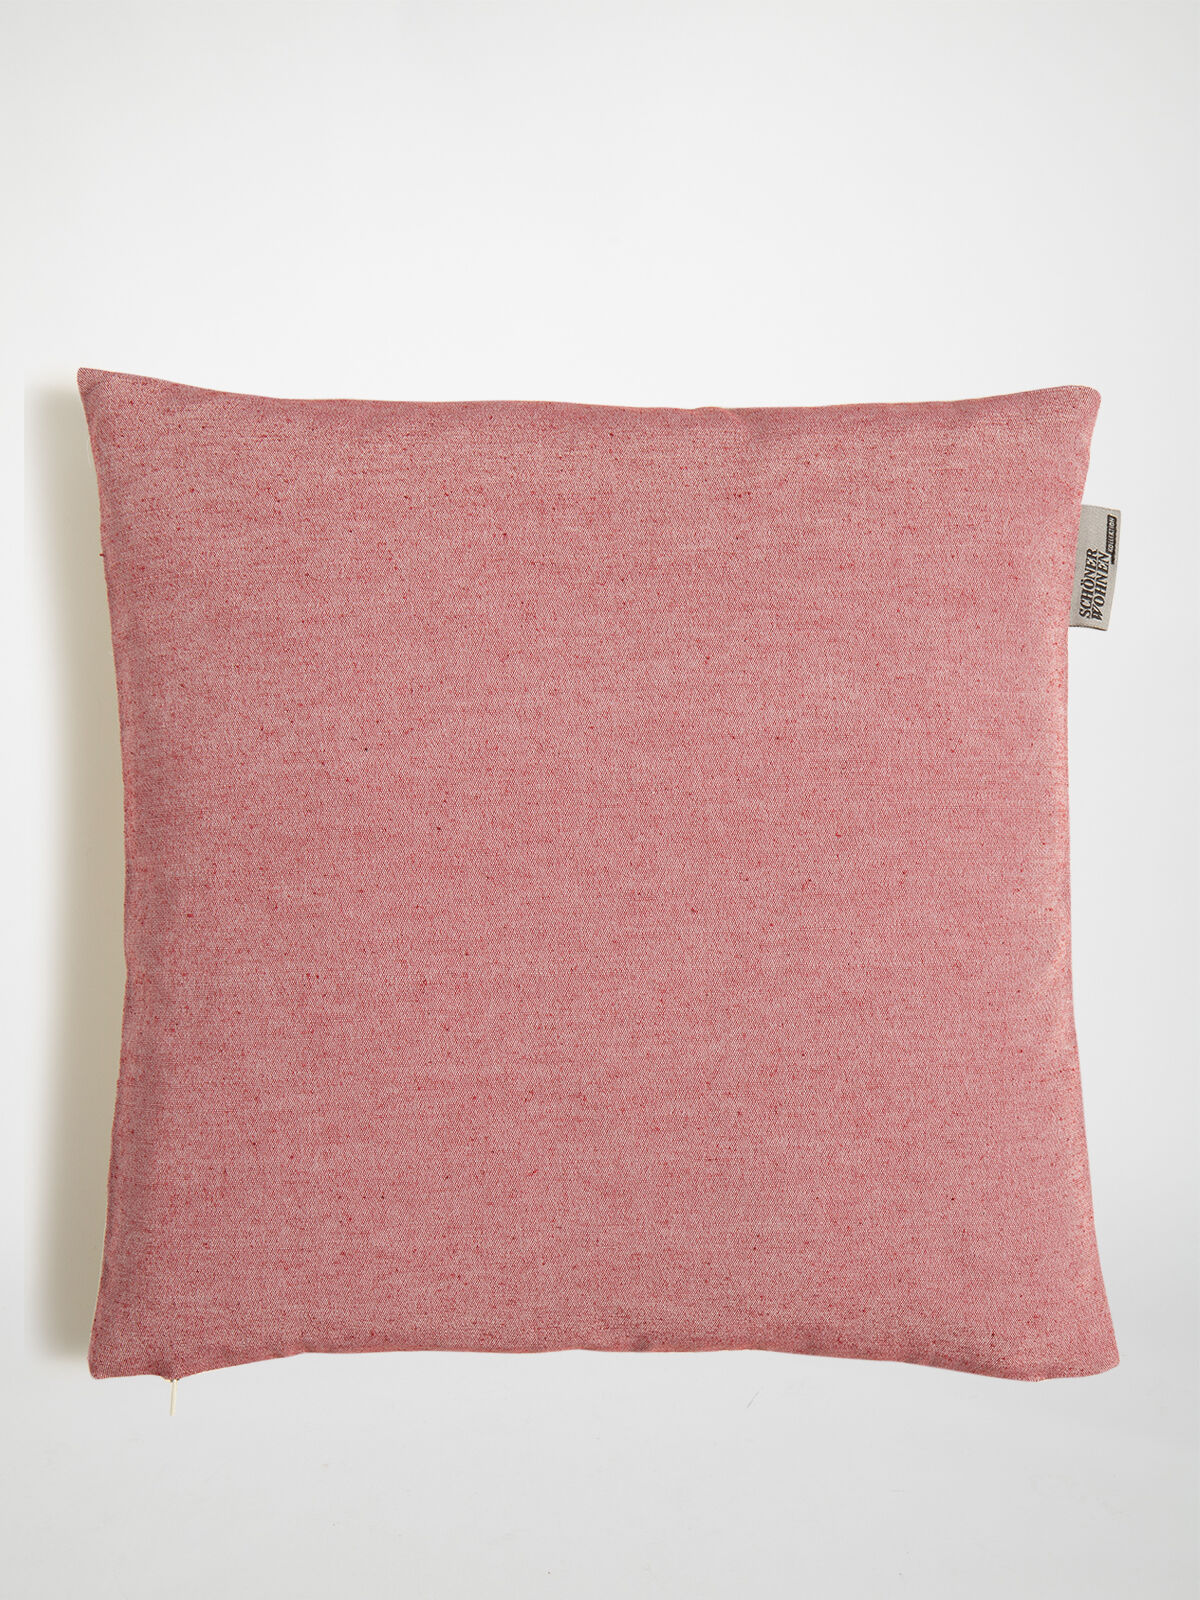 Cushion Cover 38 x 38 cm